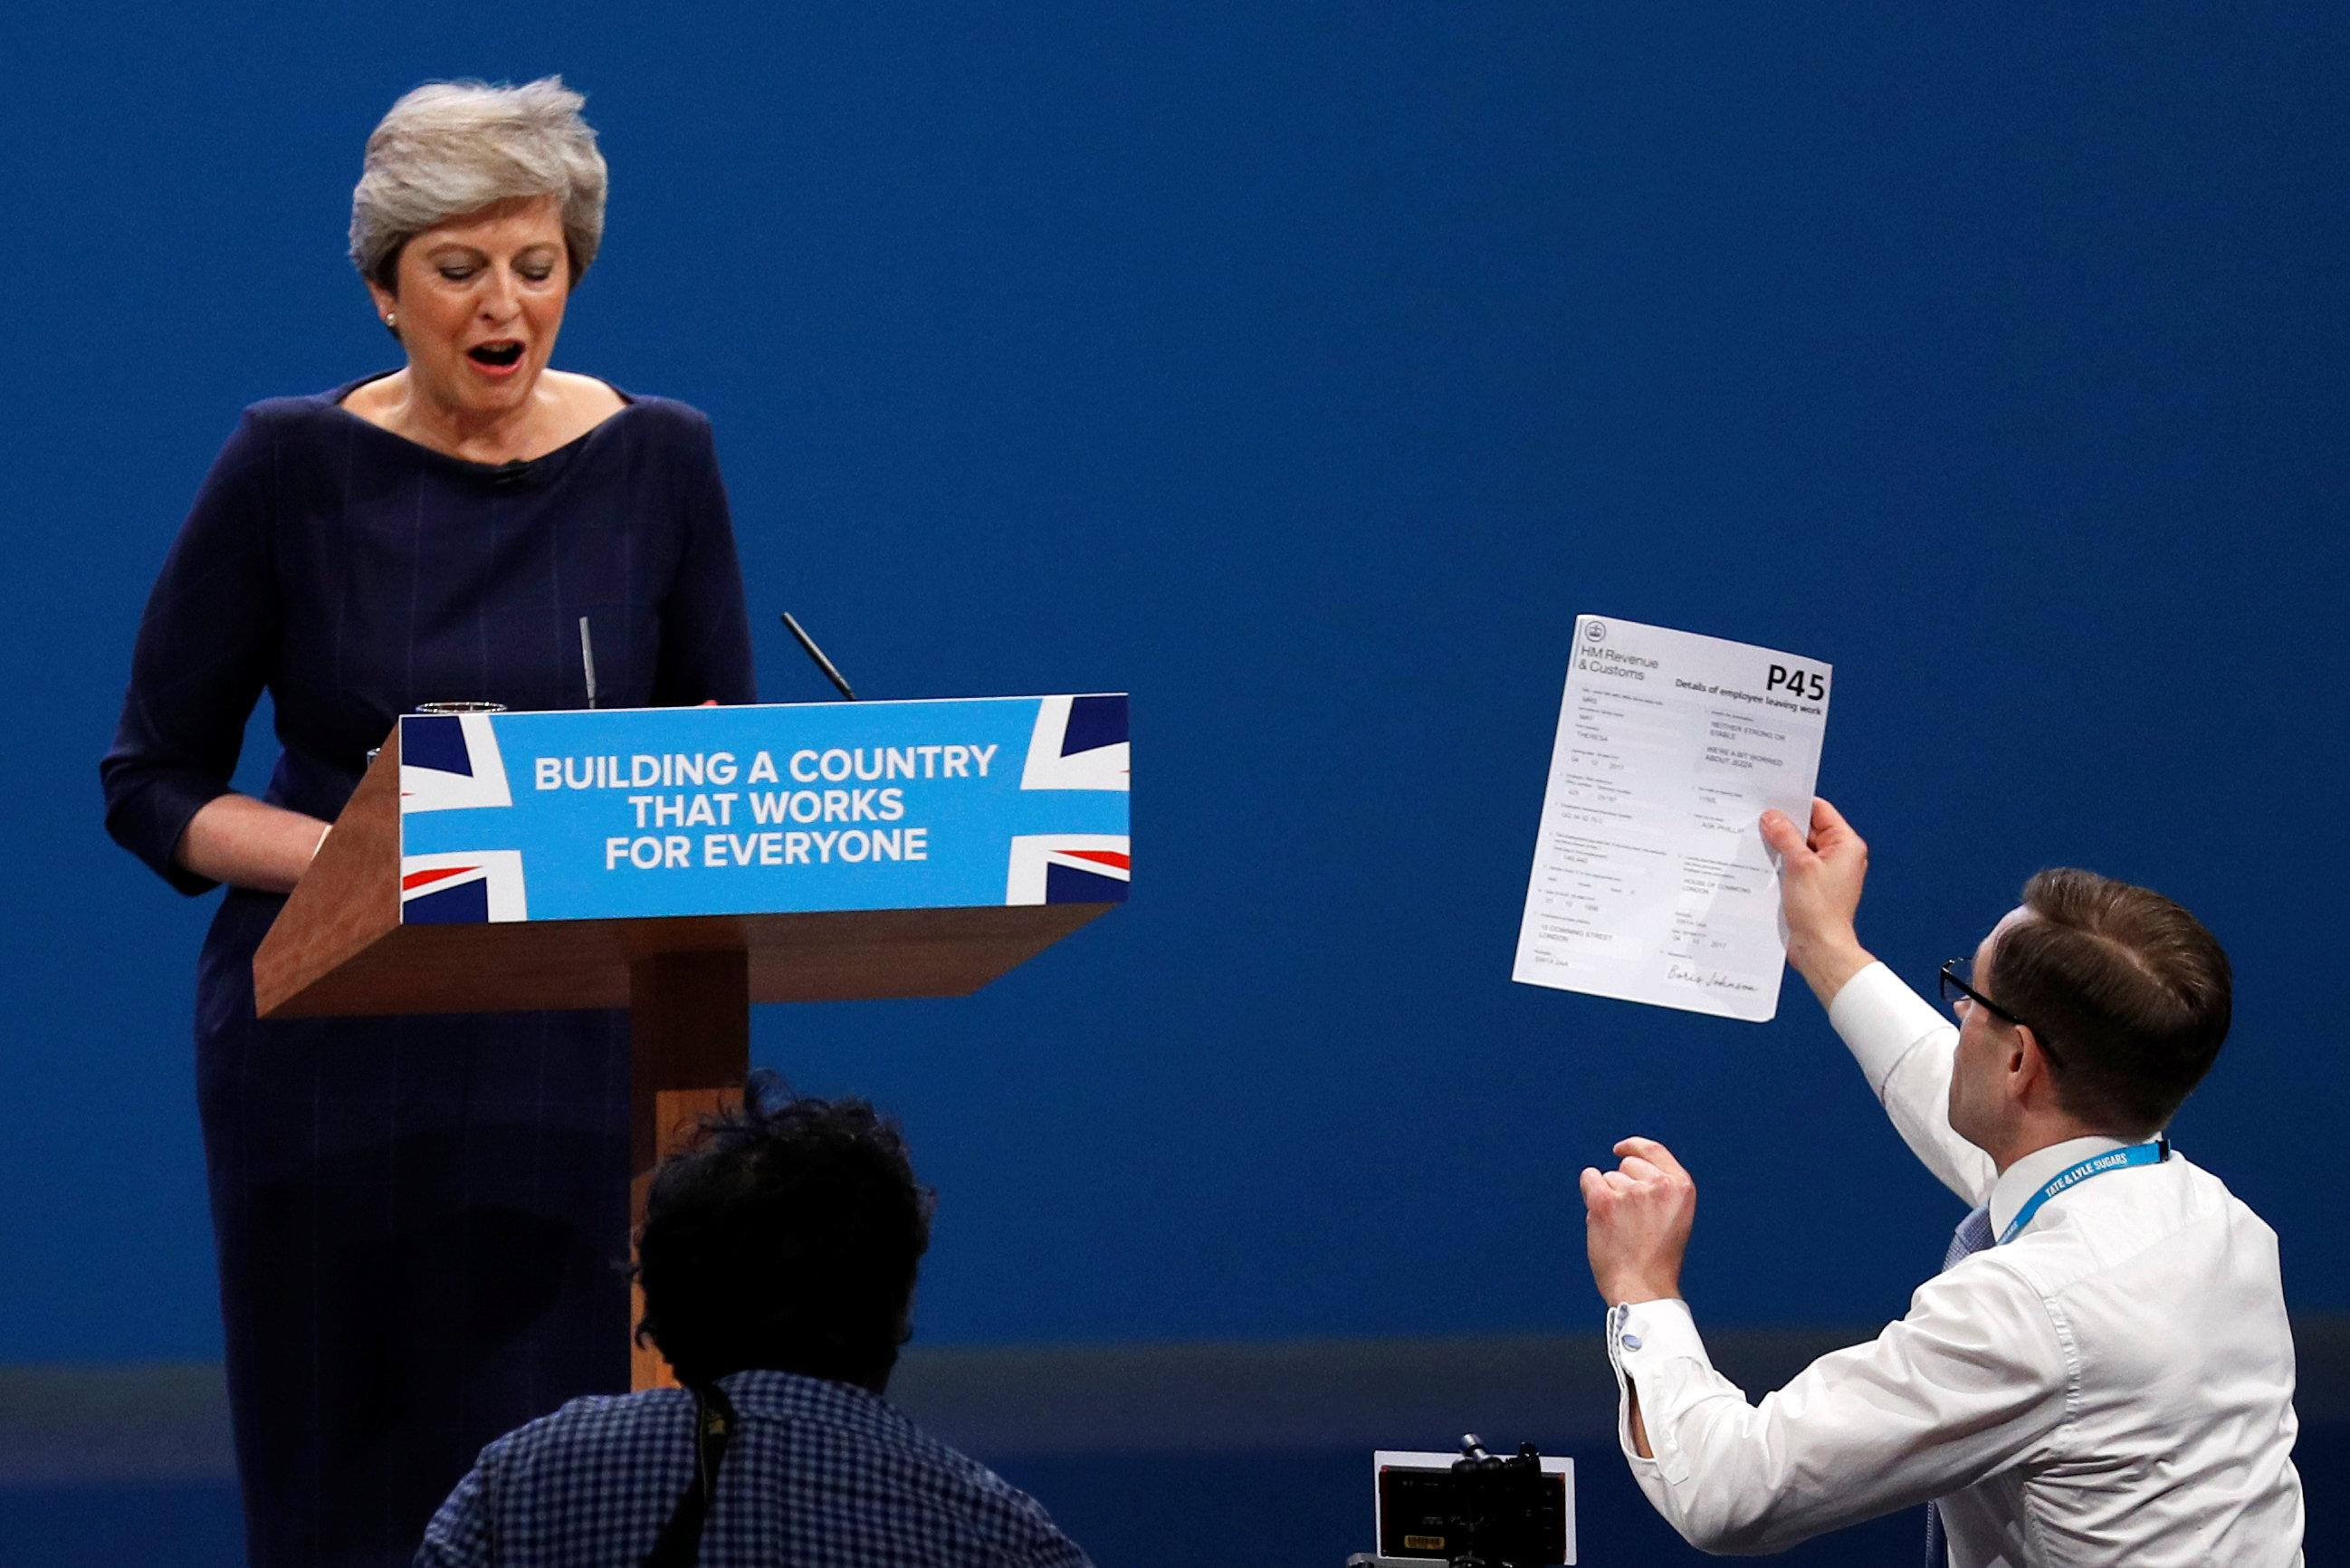 A member of the audience hands a P45 form (termination of employment tax form) to Britain's Prime Minister Theresa May as she addresses the Conservative Party conference in Manchester. (REUTERS/Phil Noble)